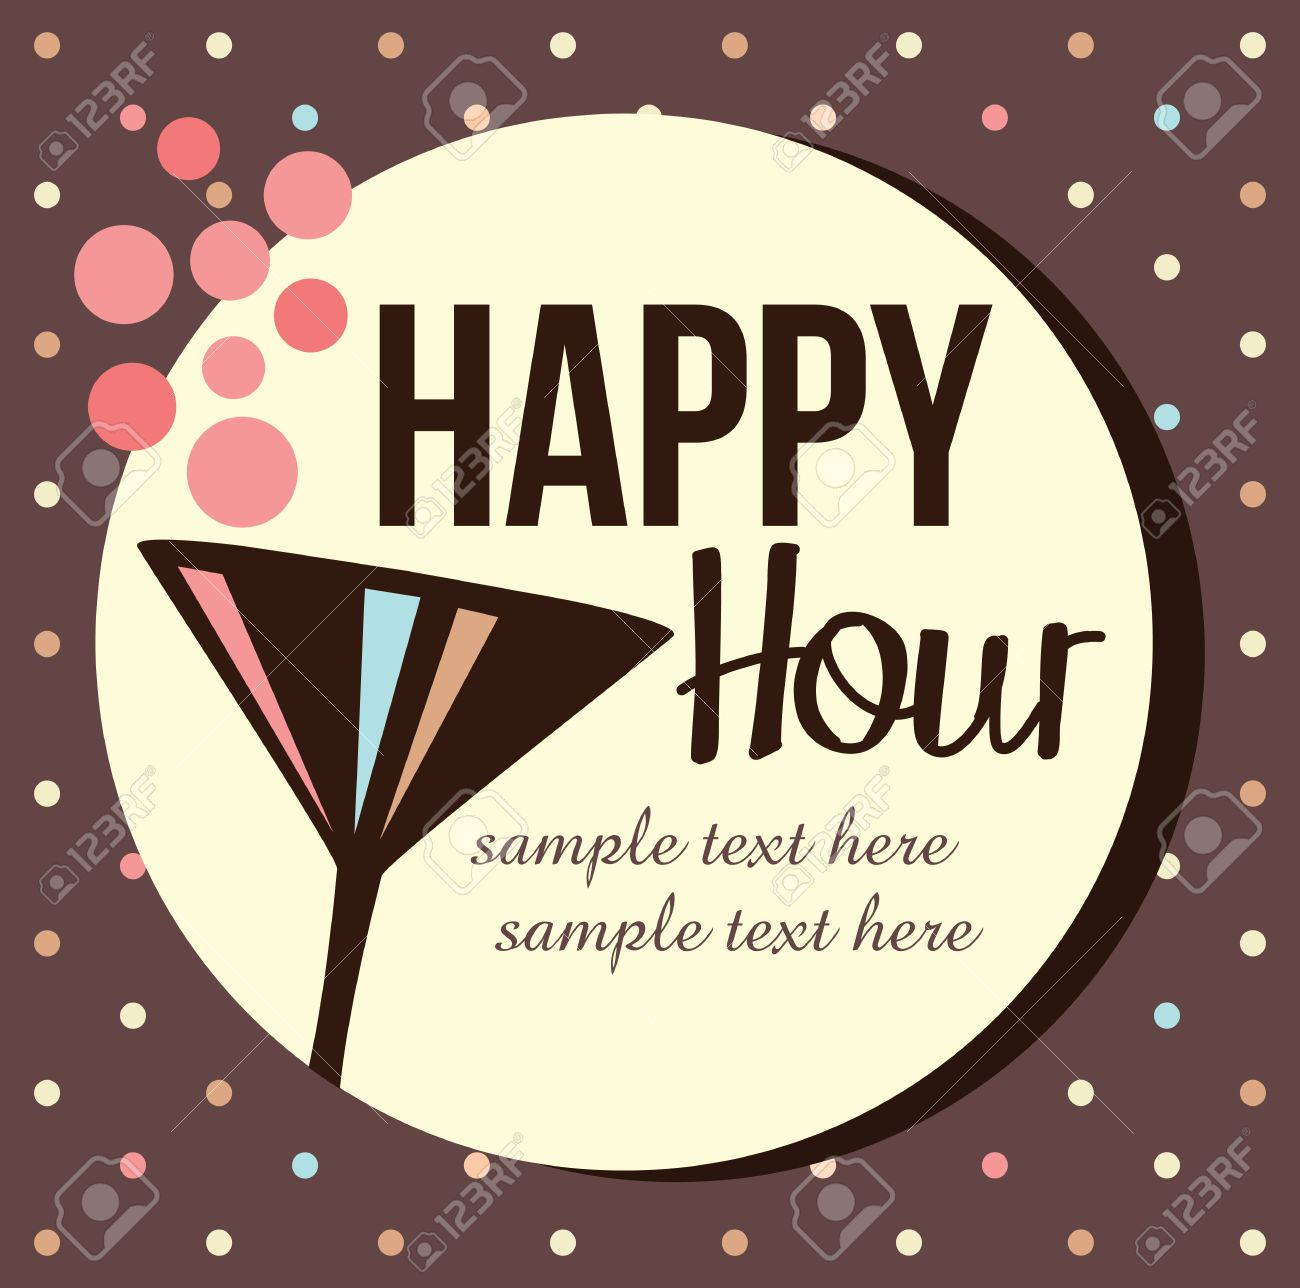 Vintage Cocktail Party Invitation Royalty Free Cliparts Vectors